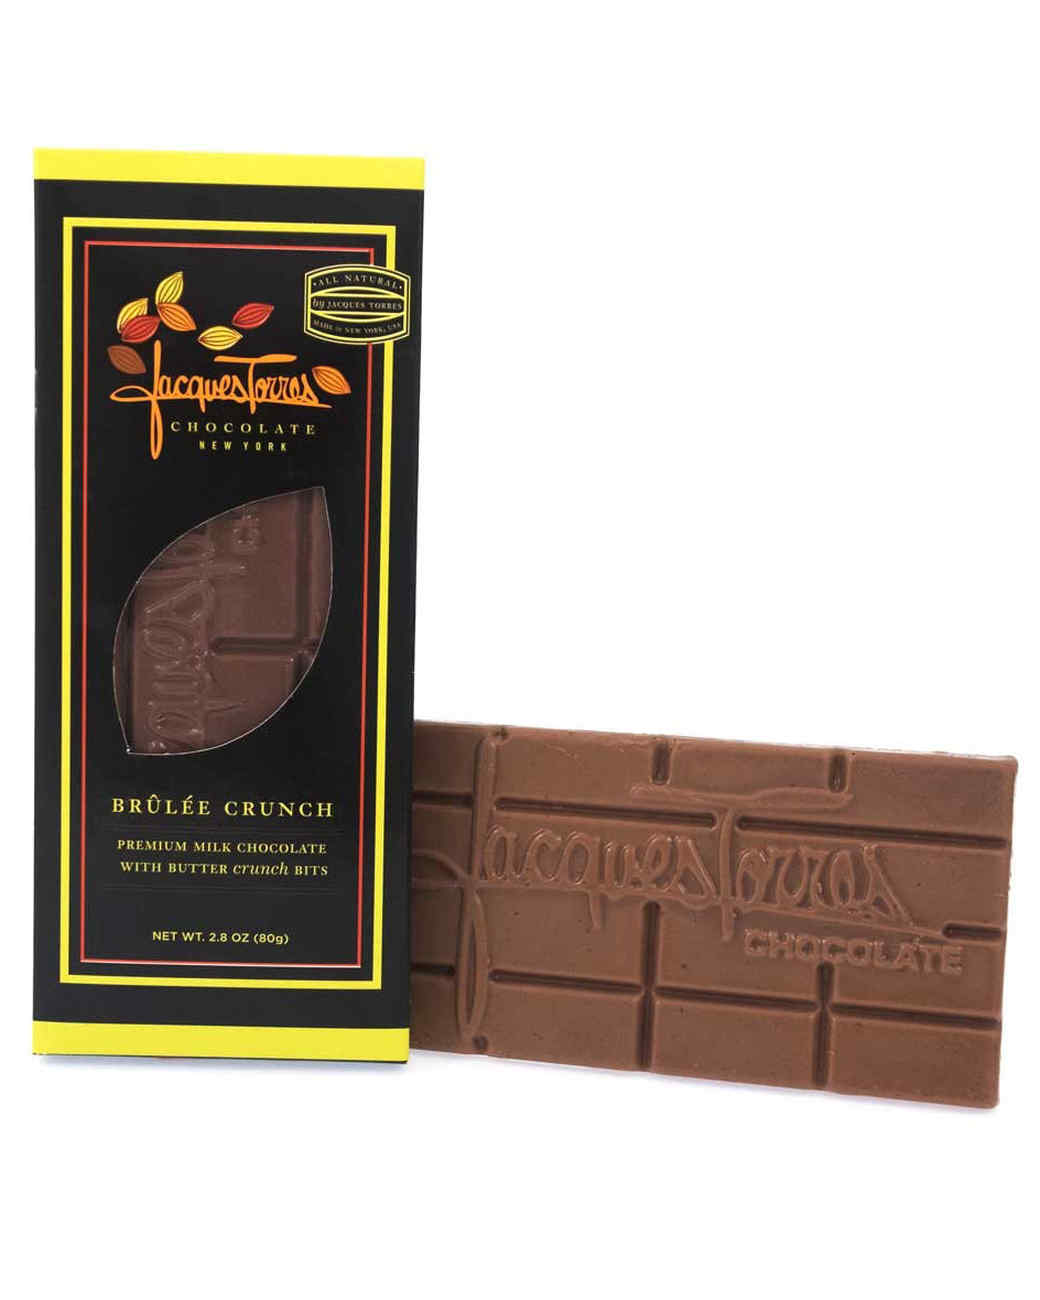 jacque torres chocolate